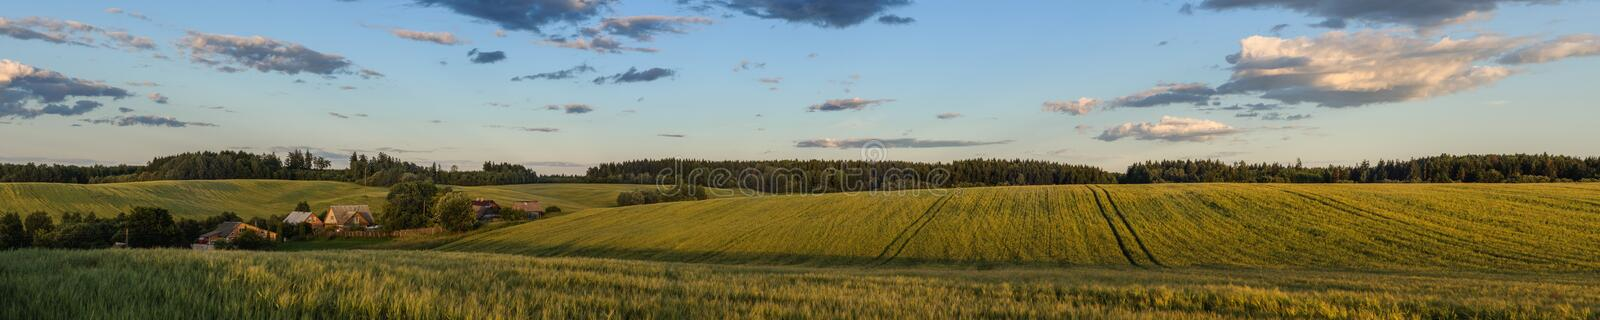 beautiful evening summer rural landscape. scenic panoramic view of a wide hilly agricultural field in the warm light of sunset royalty free stock photo